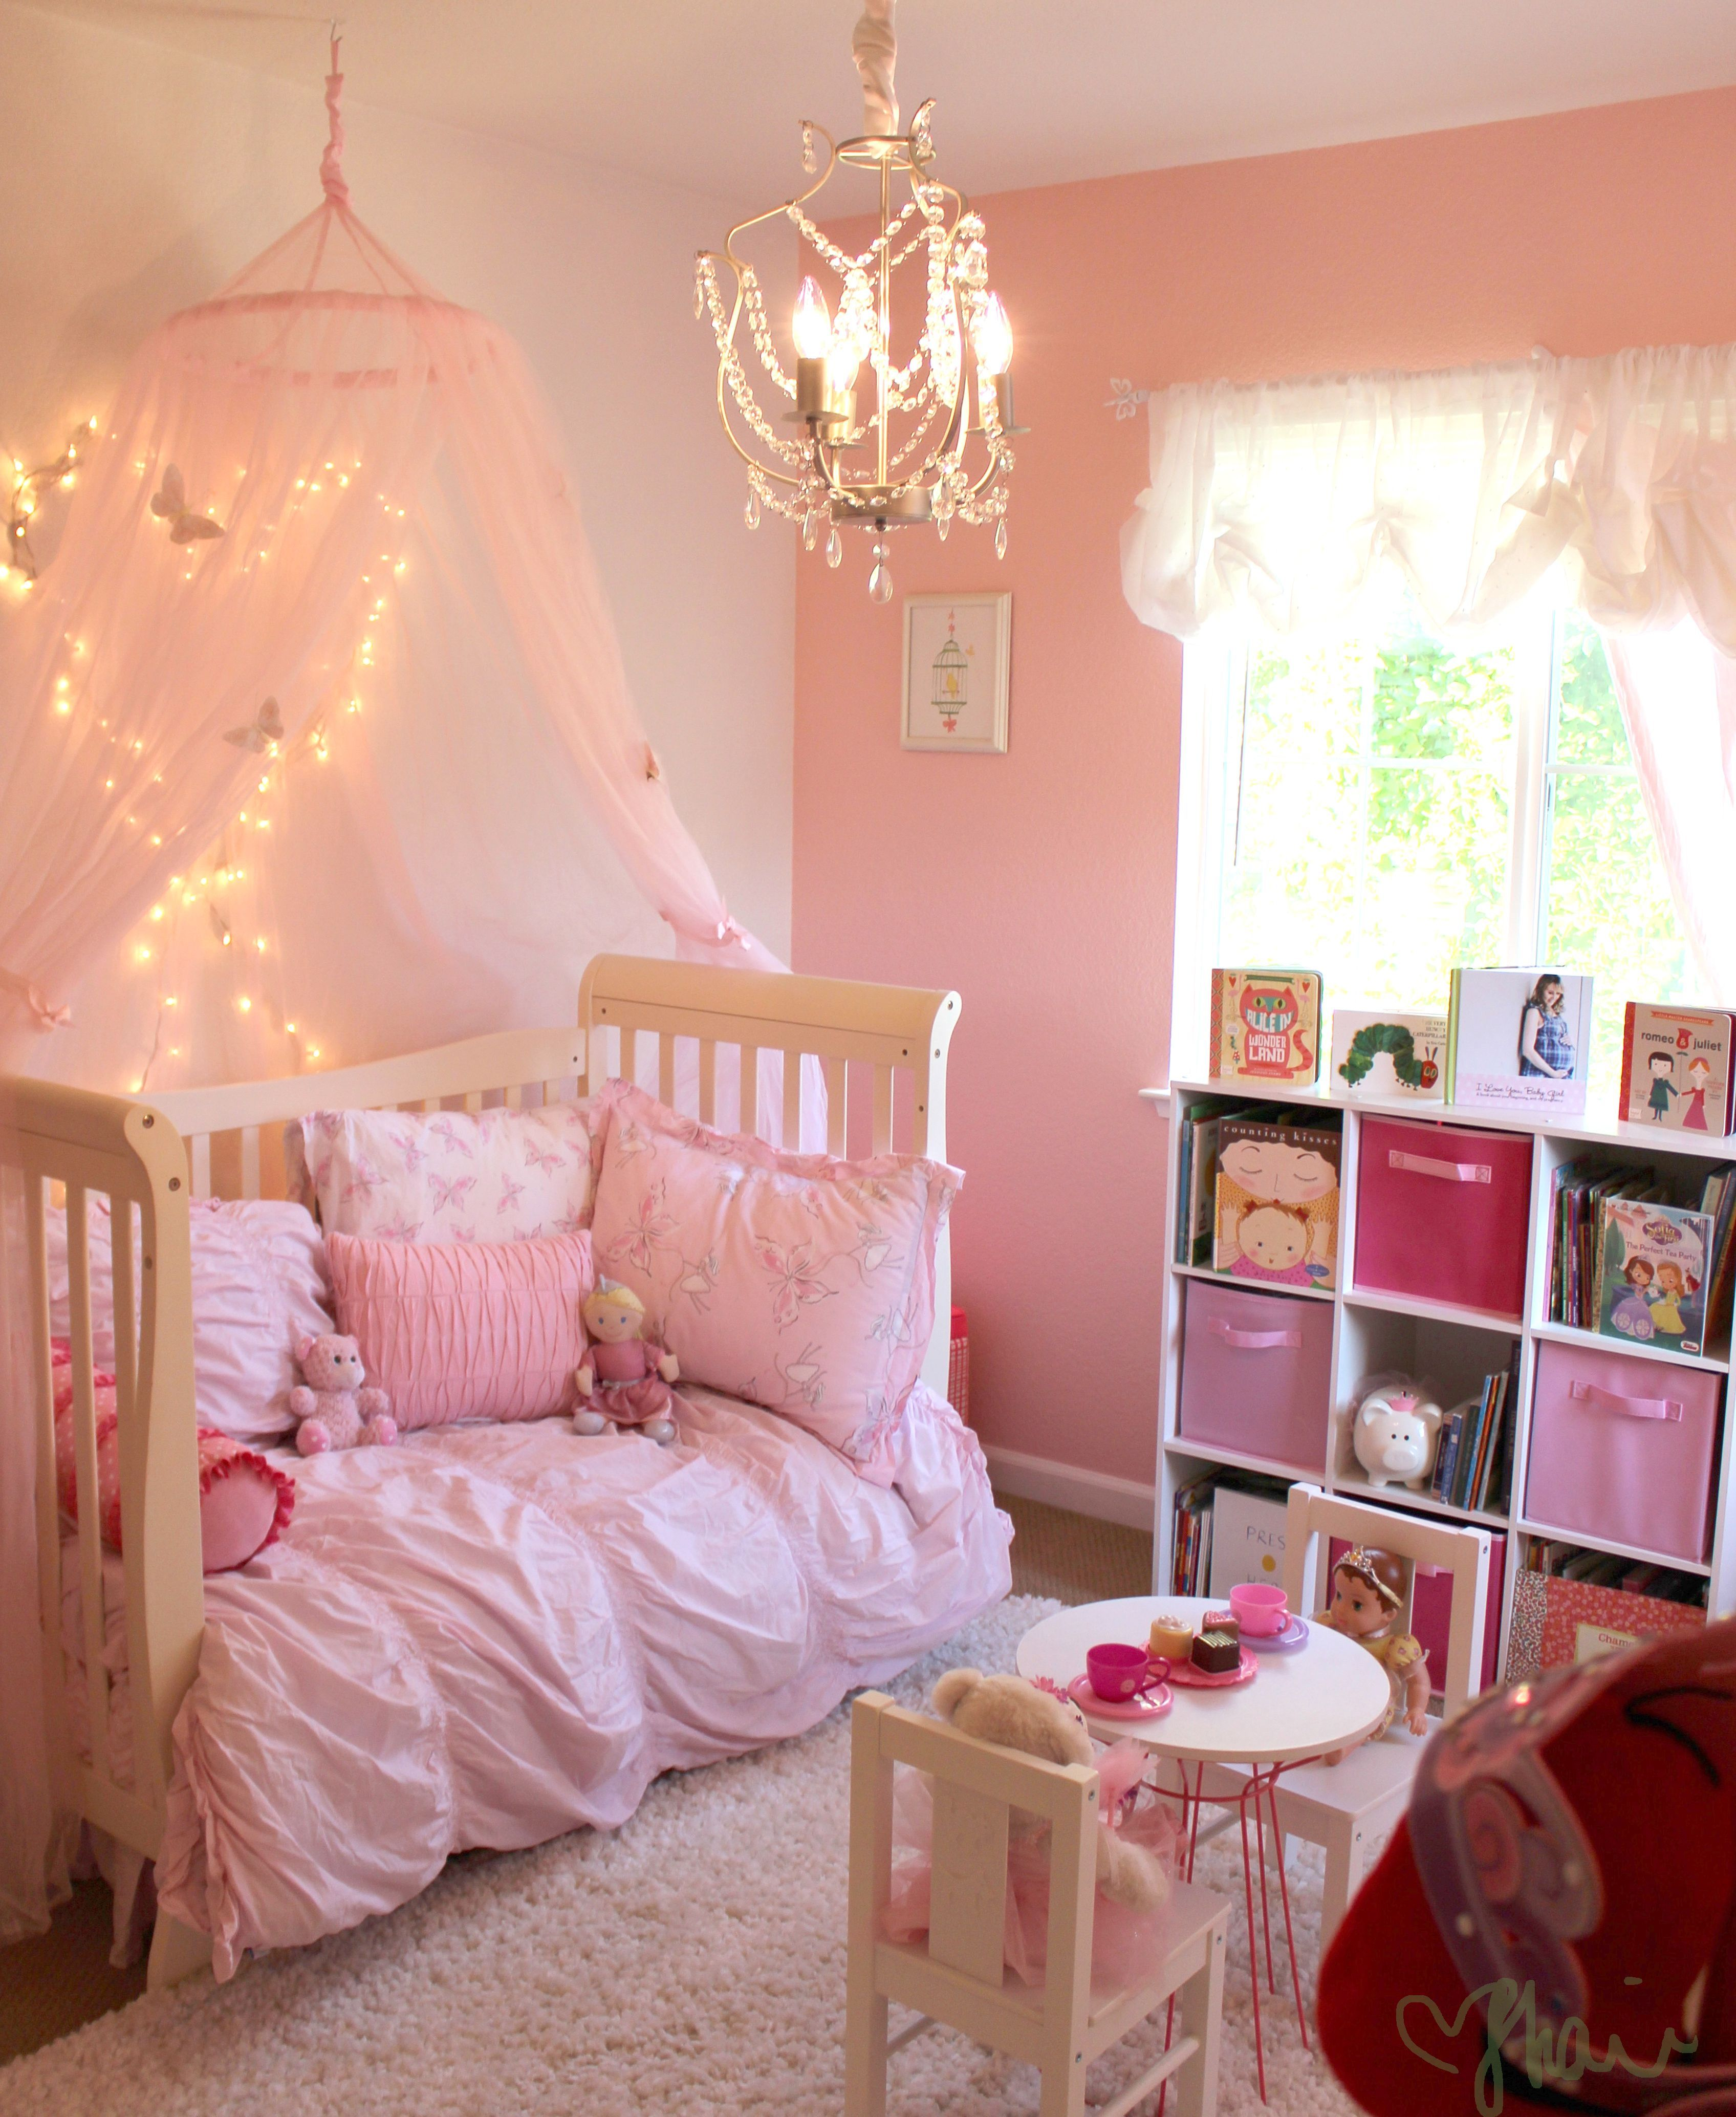 High Quality A Chic Toddler Room Fit For A Sweet Little Princess